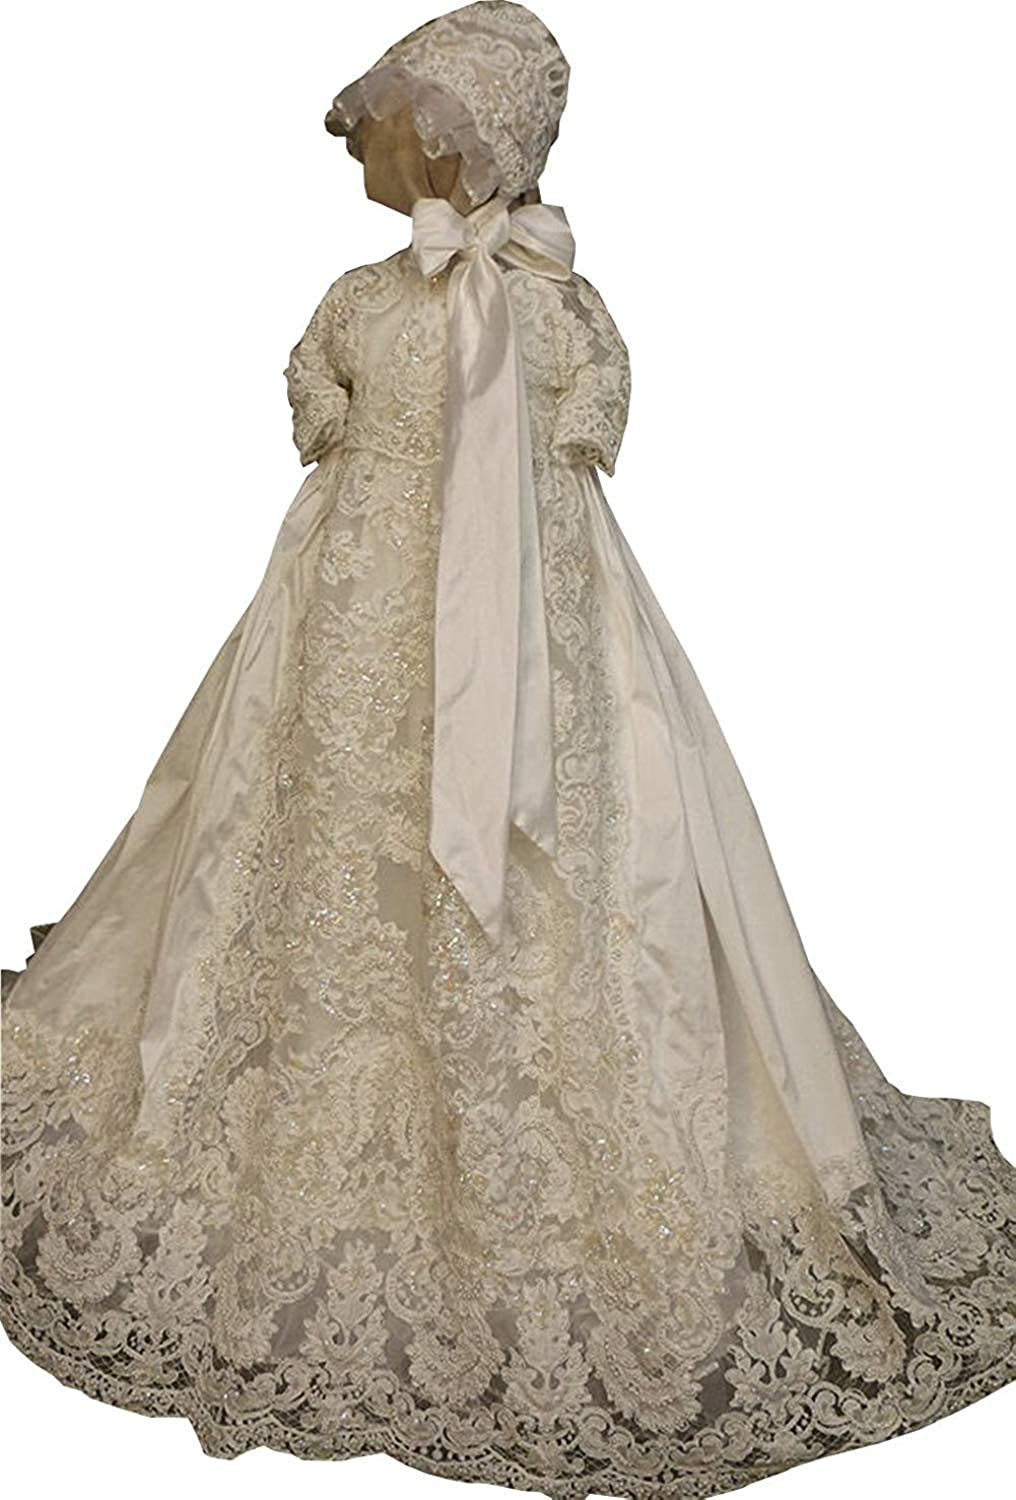 Newdeve White Ivory wholesale Challenge the lowest price Beading Lace Babies Christening Baptism Gown